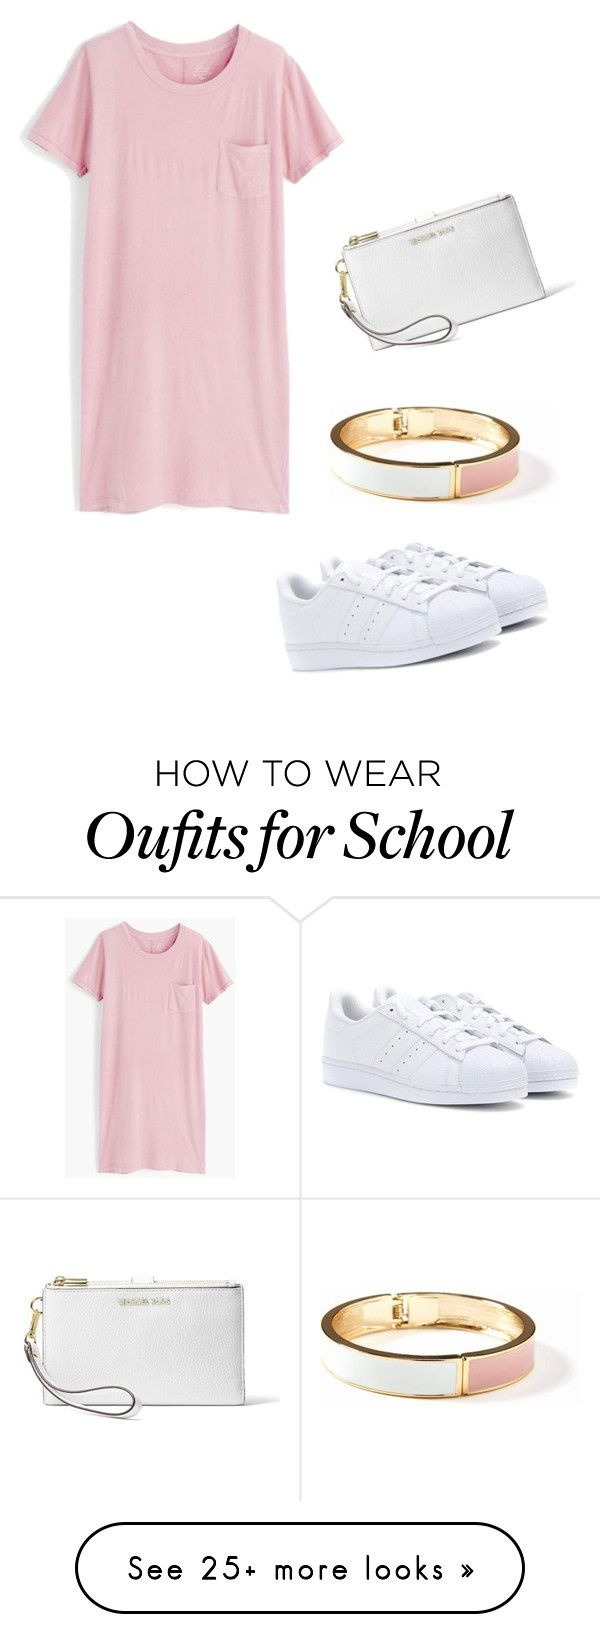 """First day of school"" by maemec180334444 on Polyvore featuring J.Crew, adidas, Old Navy and MICHAEL Michael Kors"